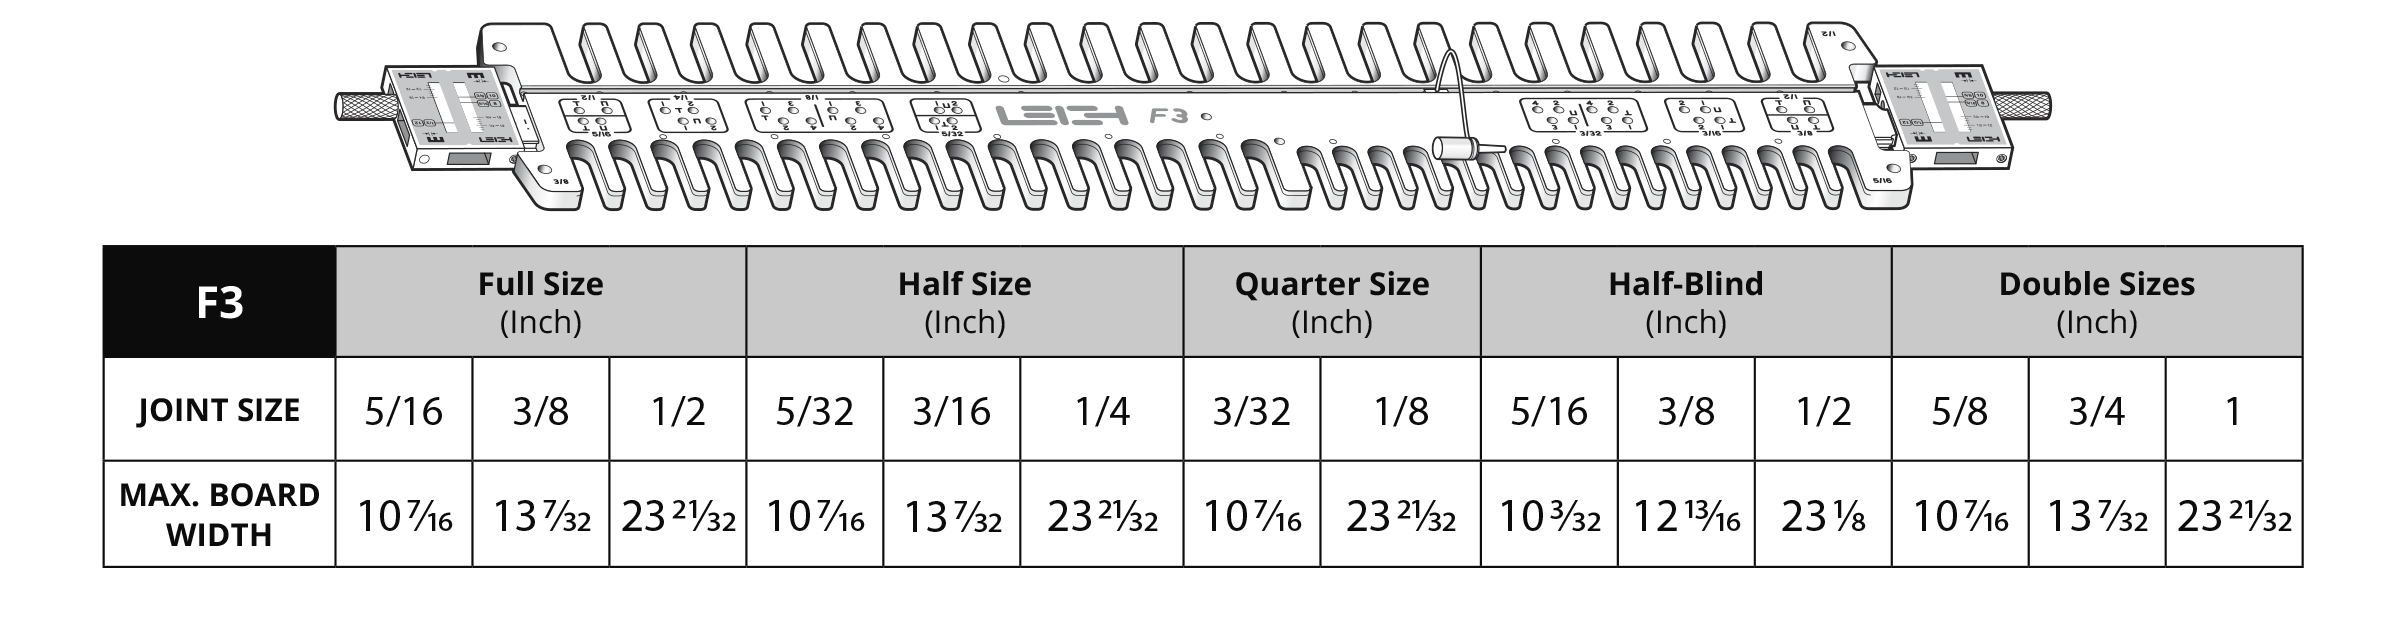 F3 Joint Size Table